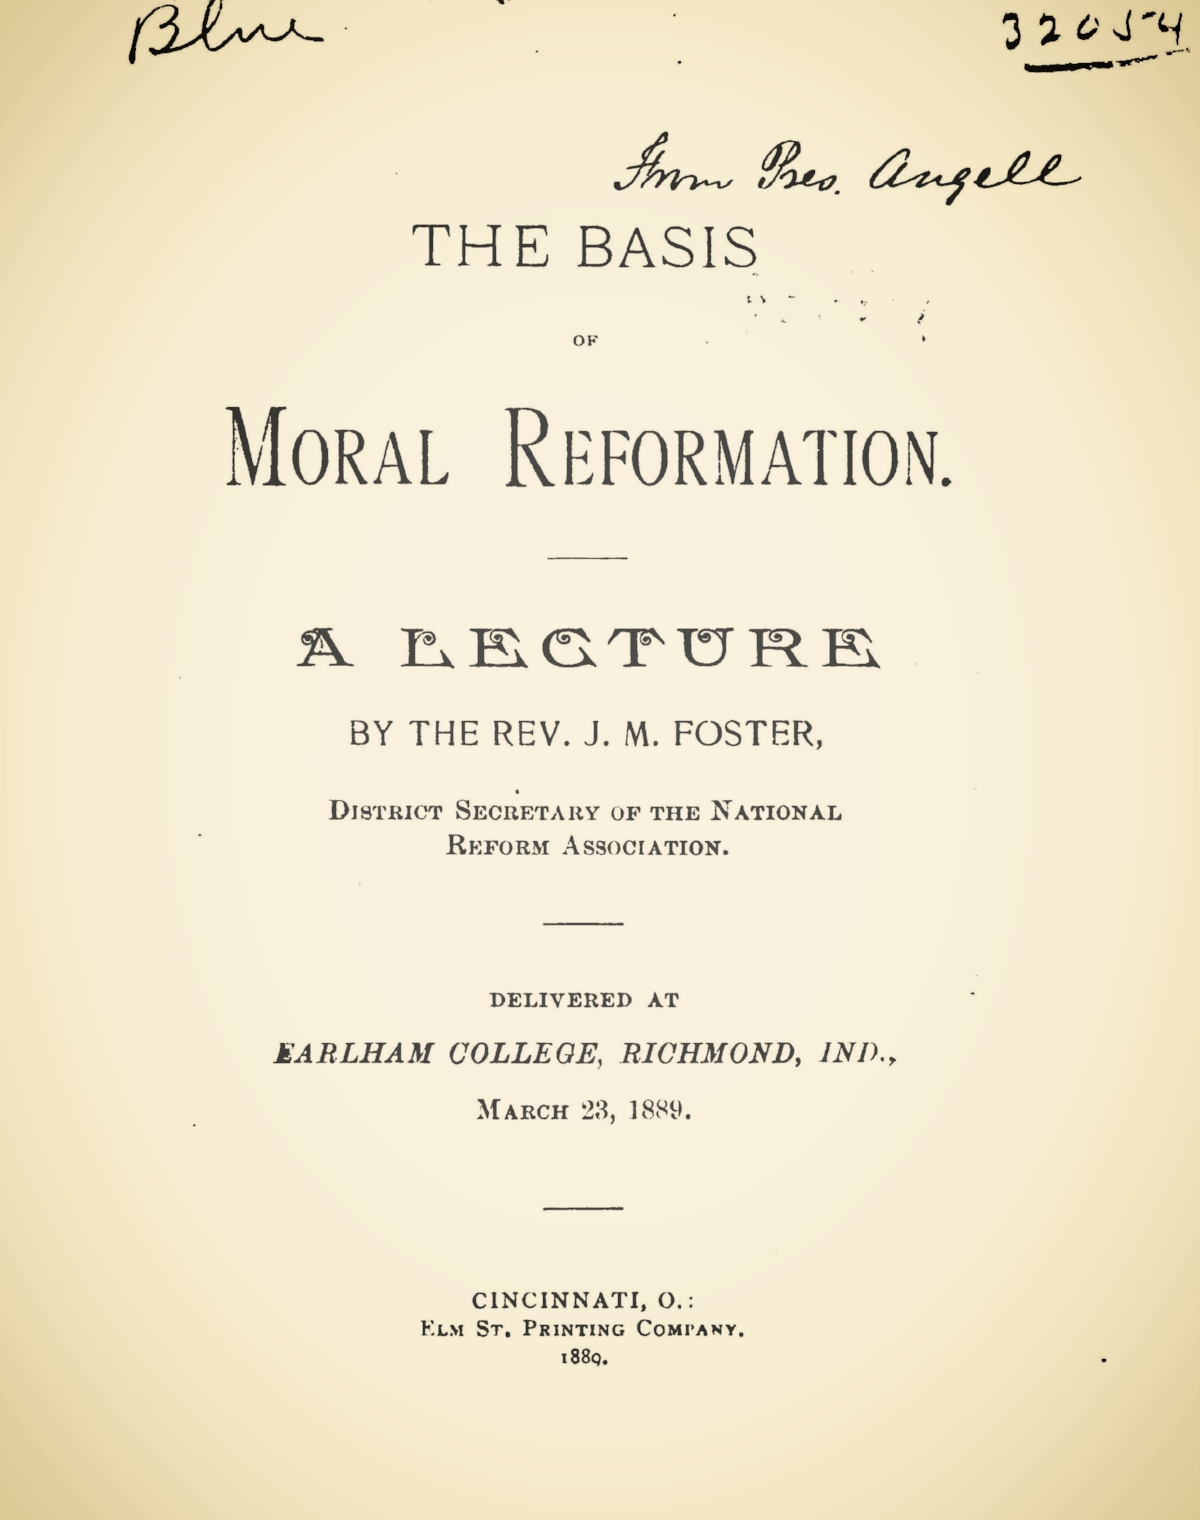 Foster, James Mitchell, The Basis of Moral Reformation Title Page.jpg